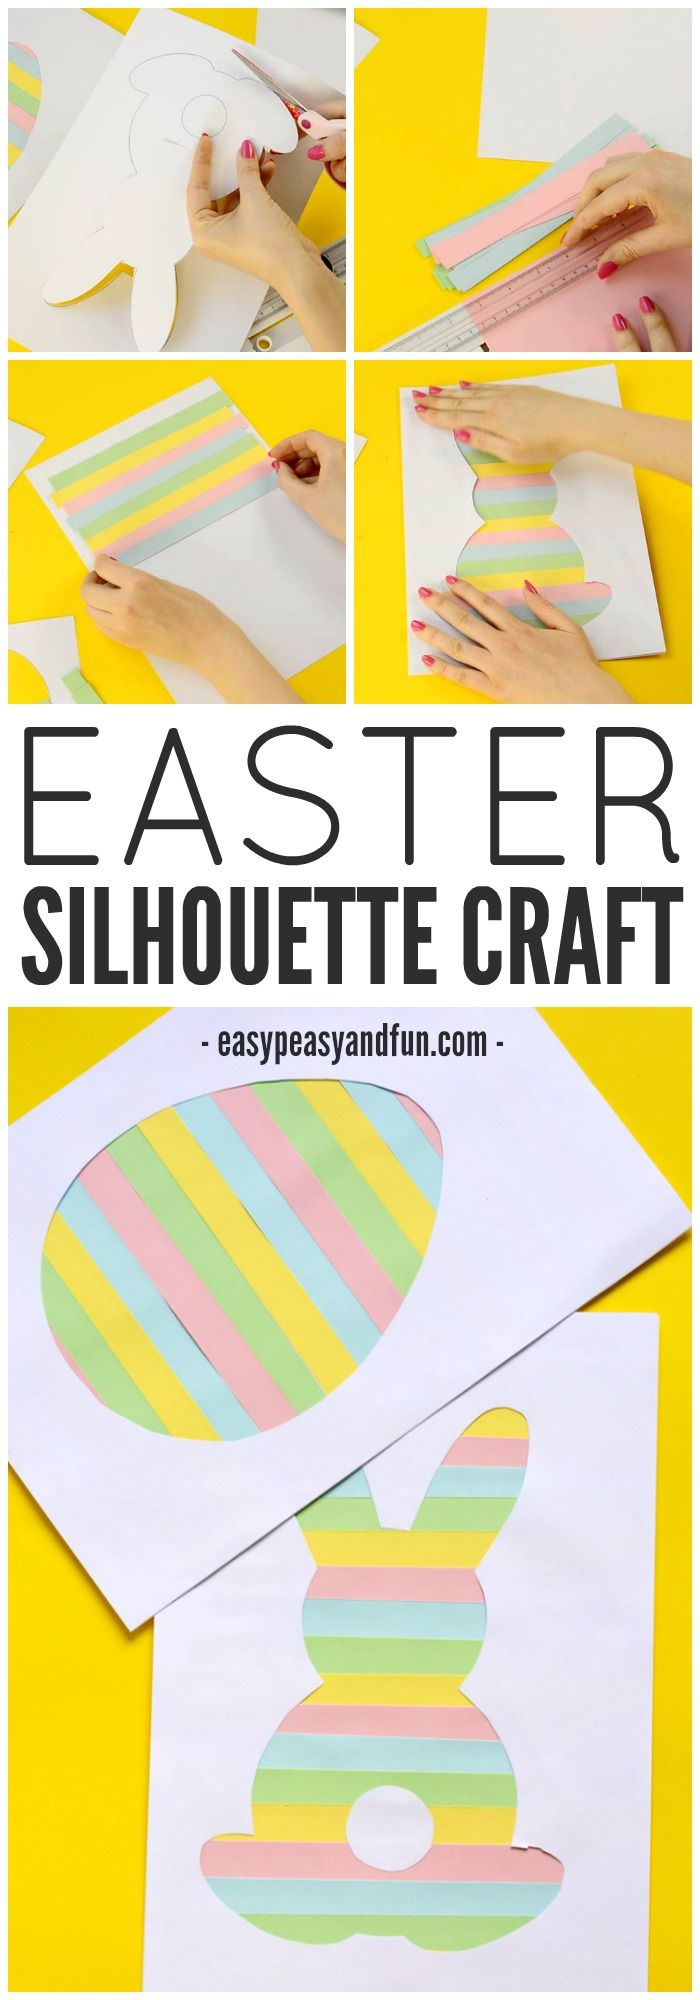 Printable Easter Silhouette Craft! Pretty and easy craft for kids!